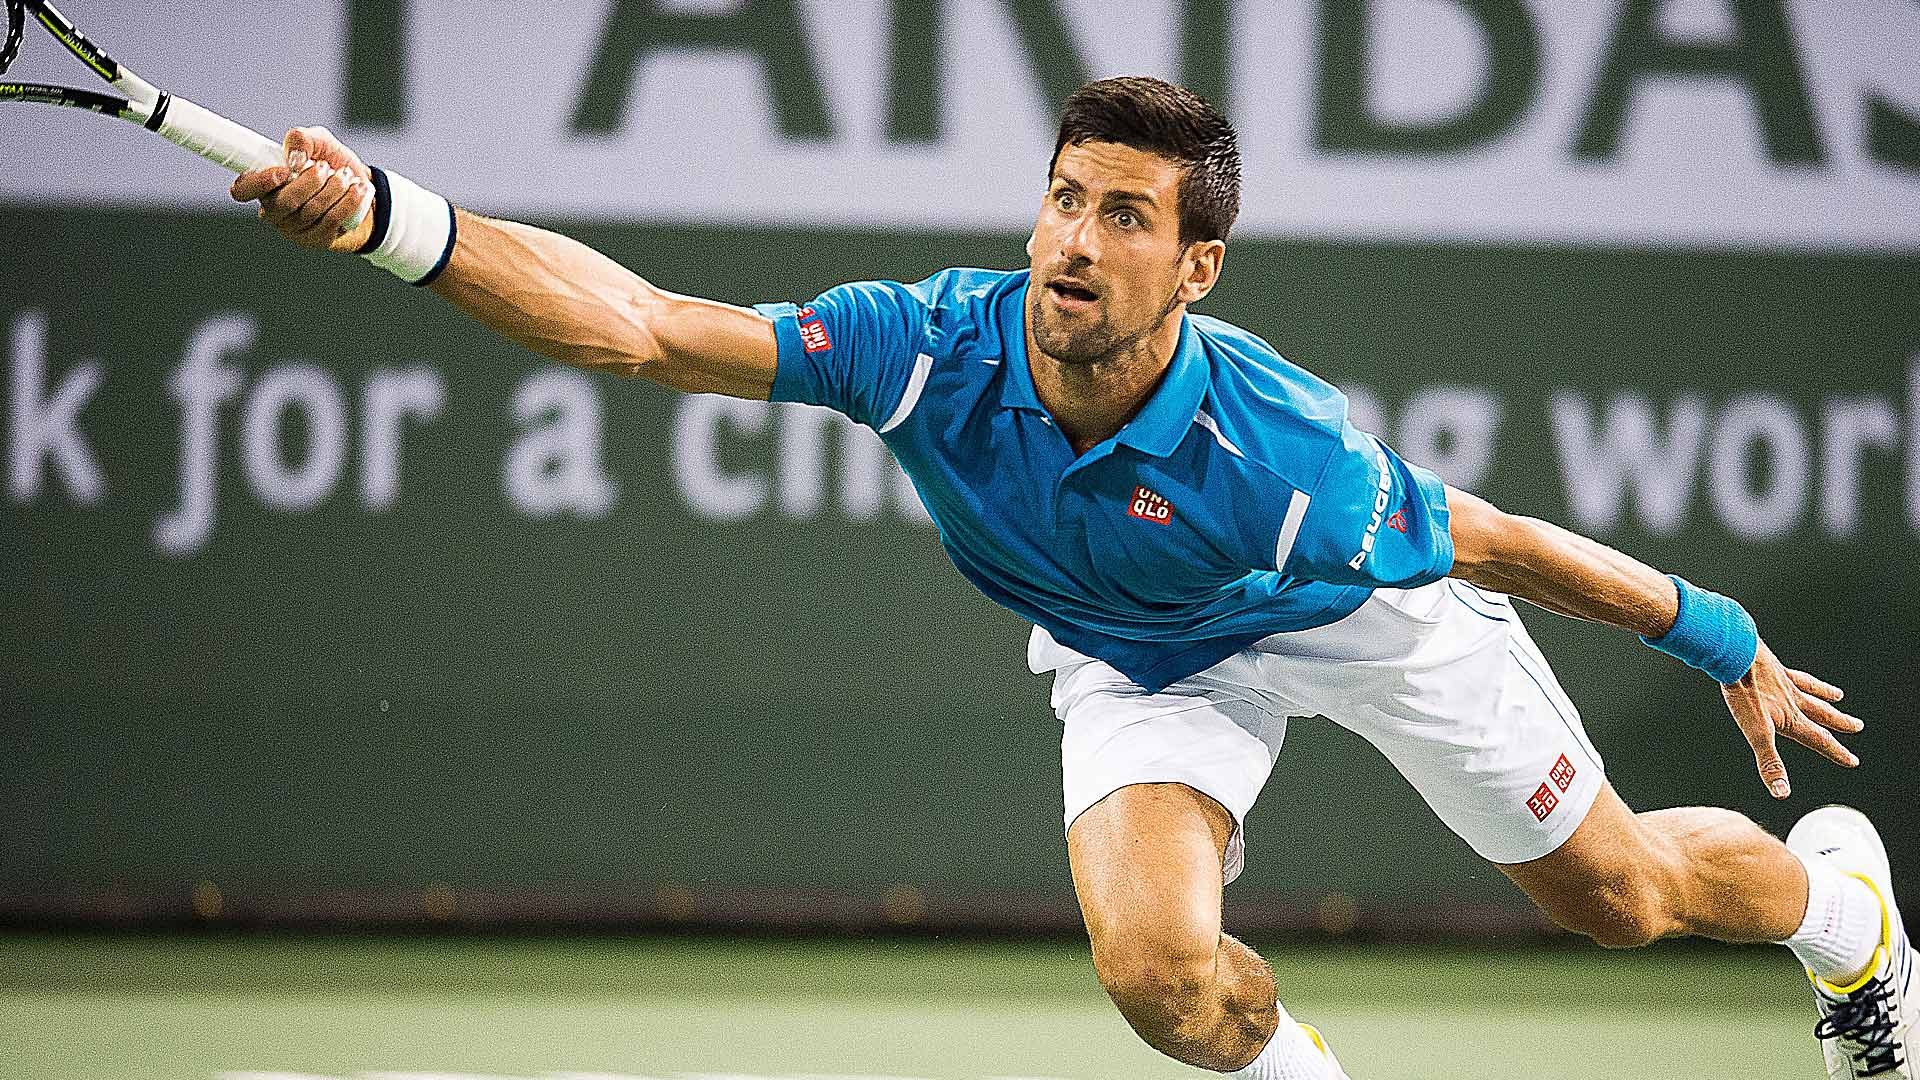 novak djokovic wins atp indian wells defeating milos raonic 2016 imagesnovak djokovic wins atp indian wells defeating milos raonic 2016 images